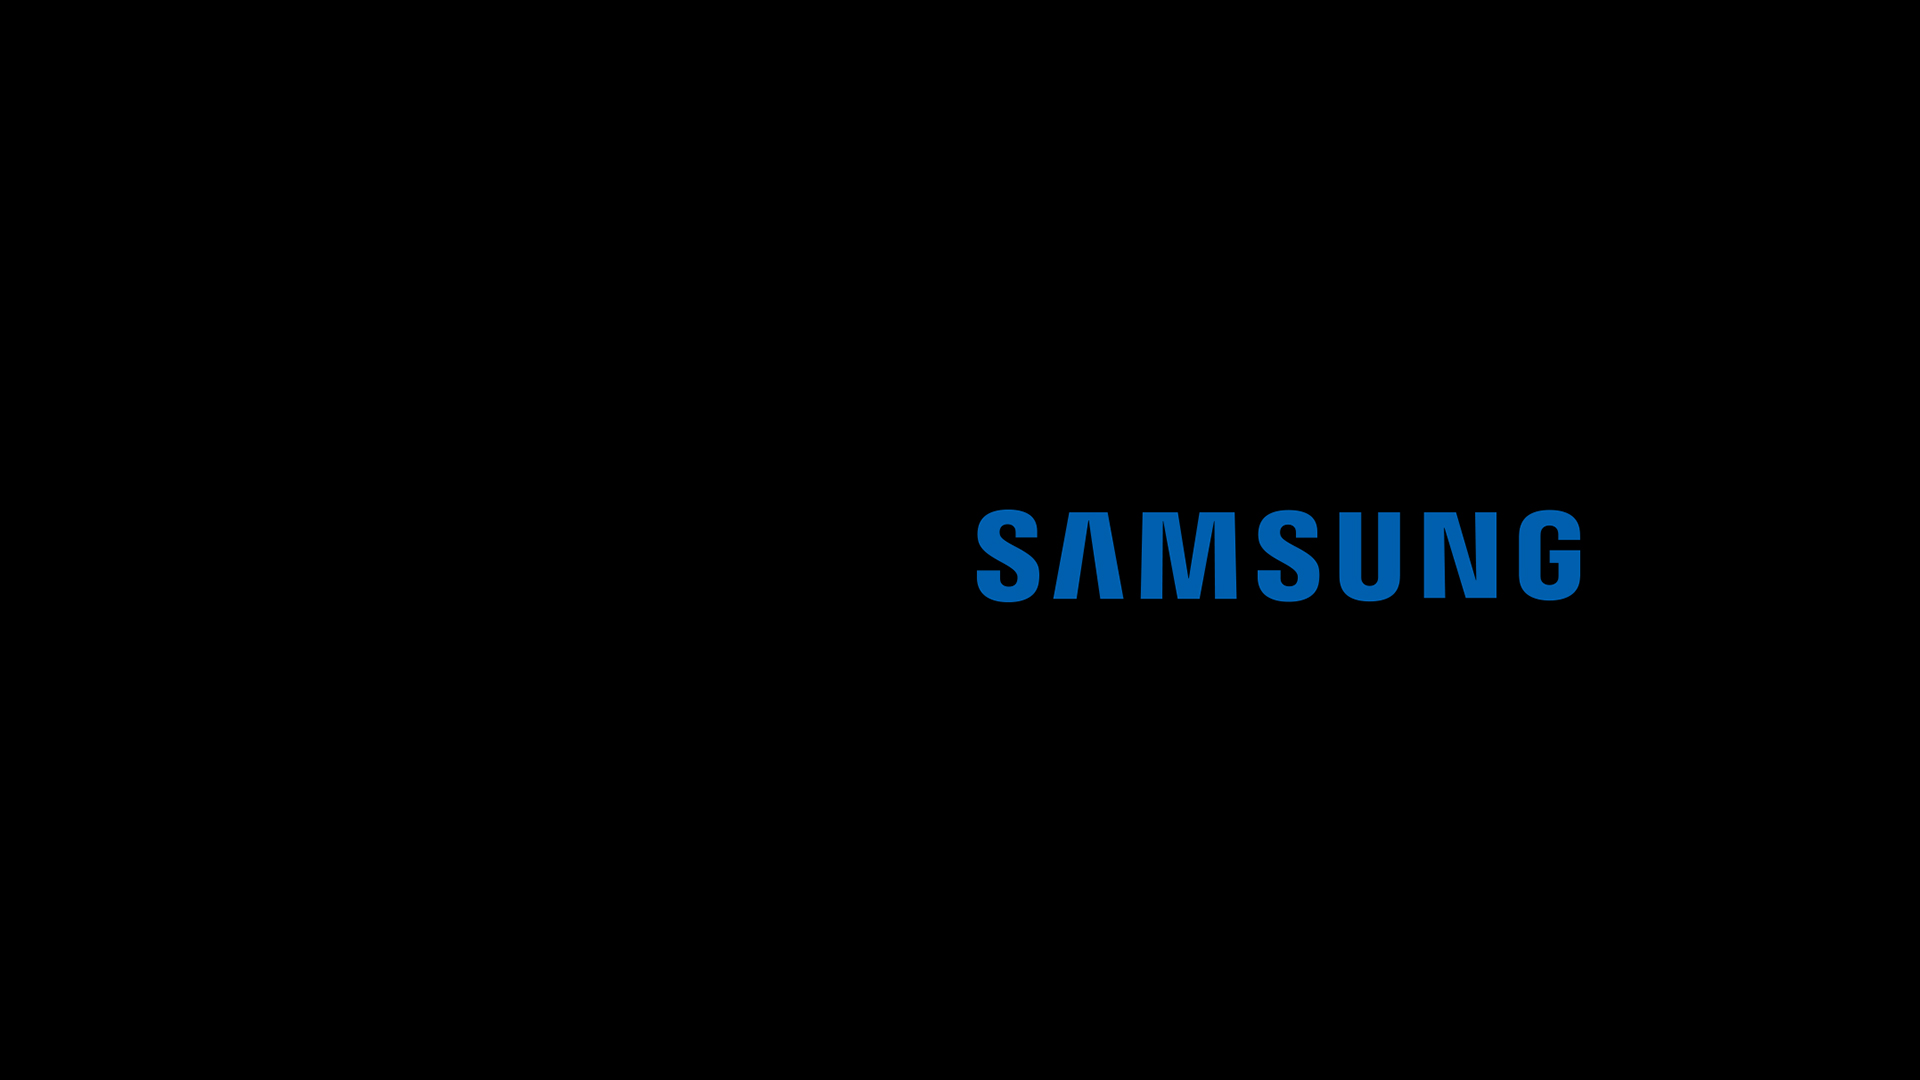 Telkom brings you a collection of the latest and greatest Samsung devices